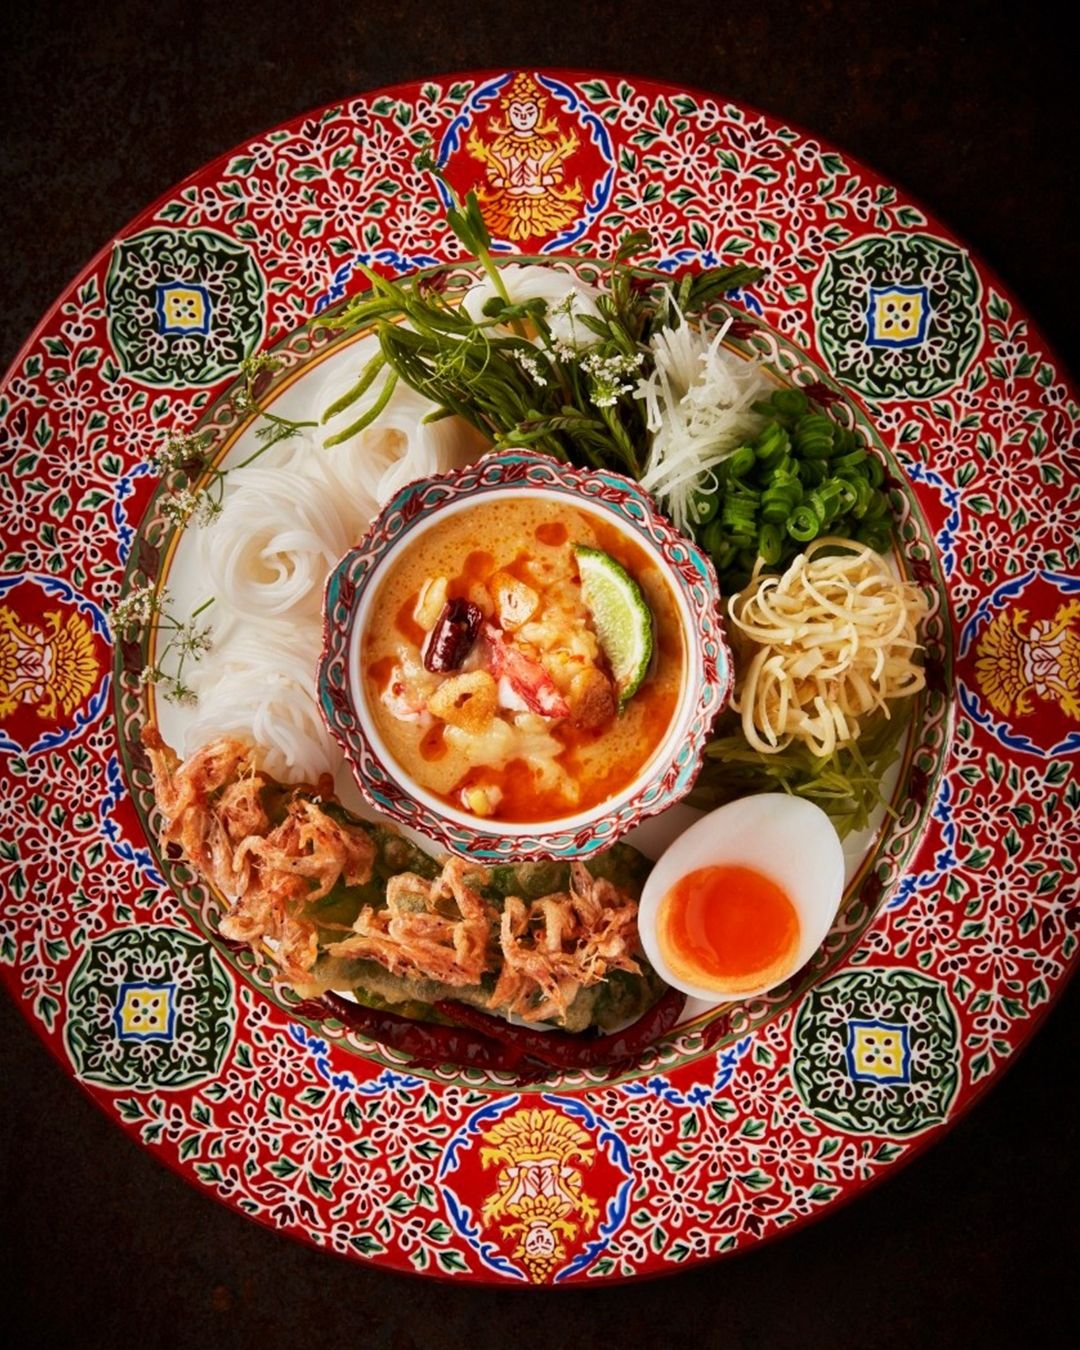 Enjoy A Symphony Of Thai Tastes With R-haan's Delivery Menu